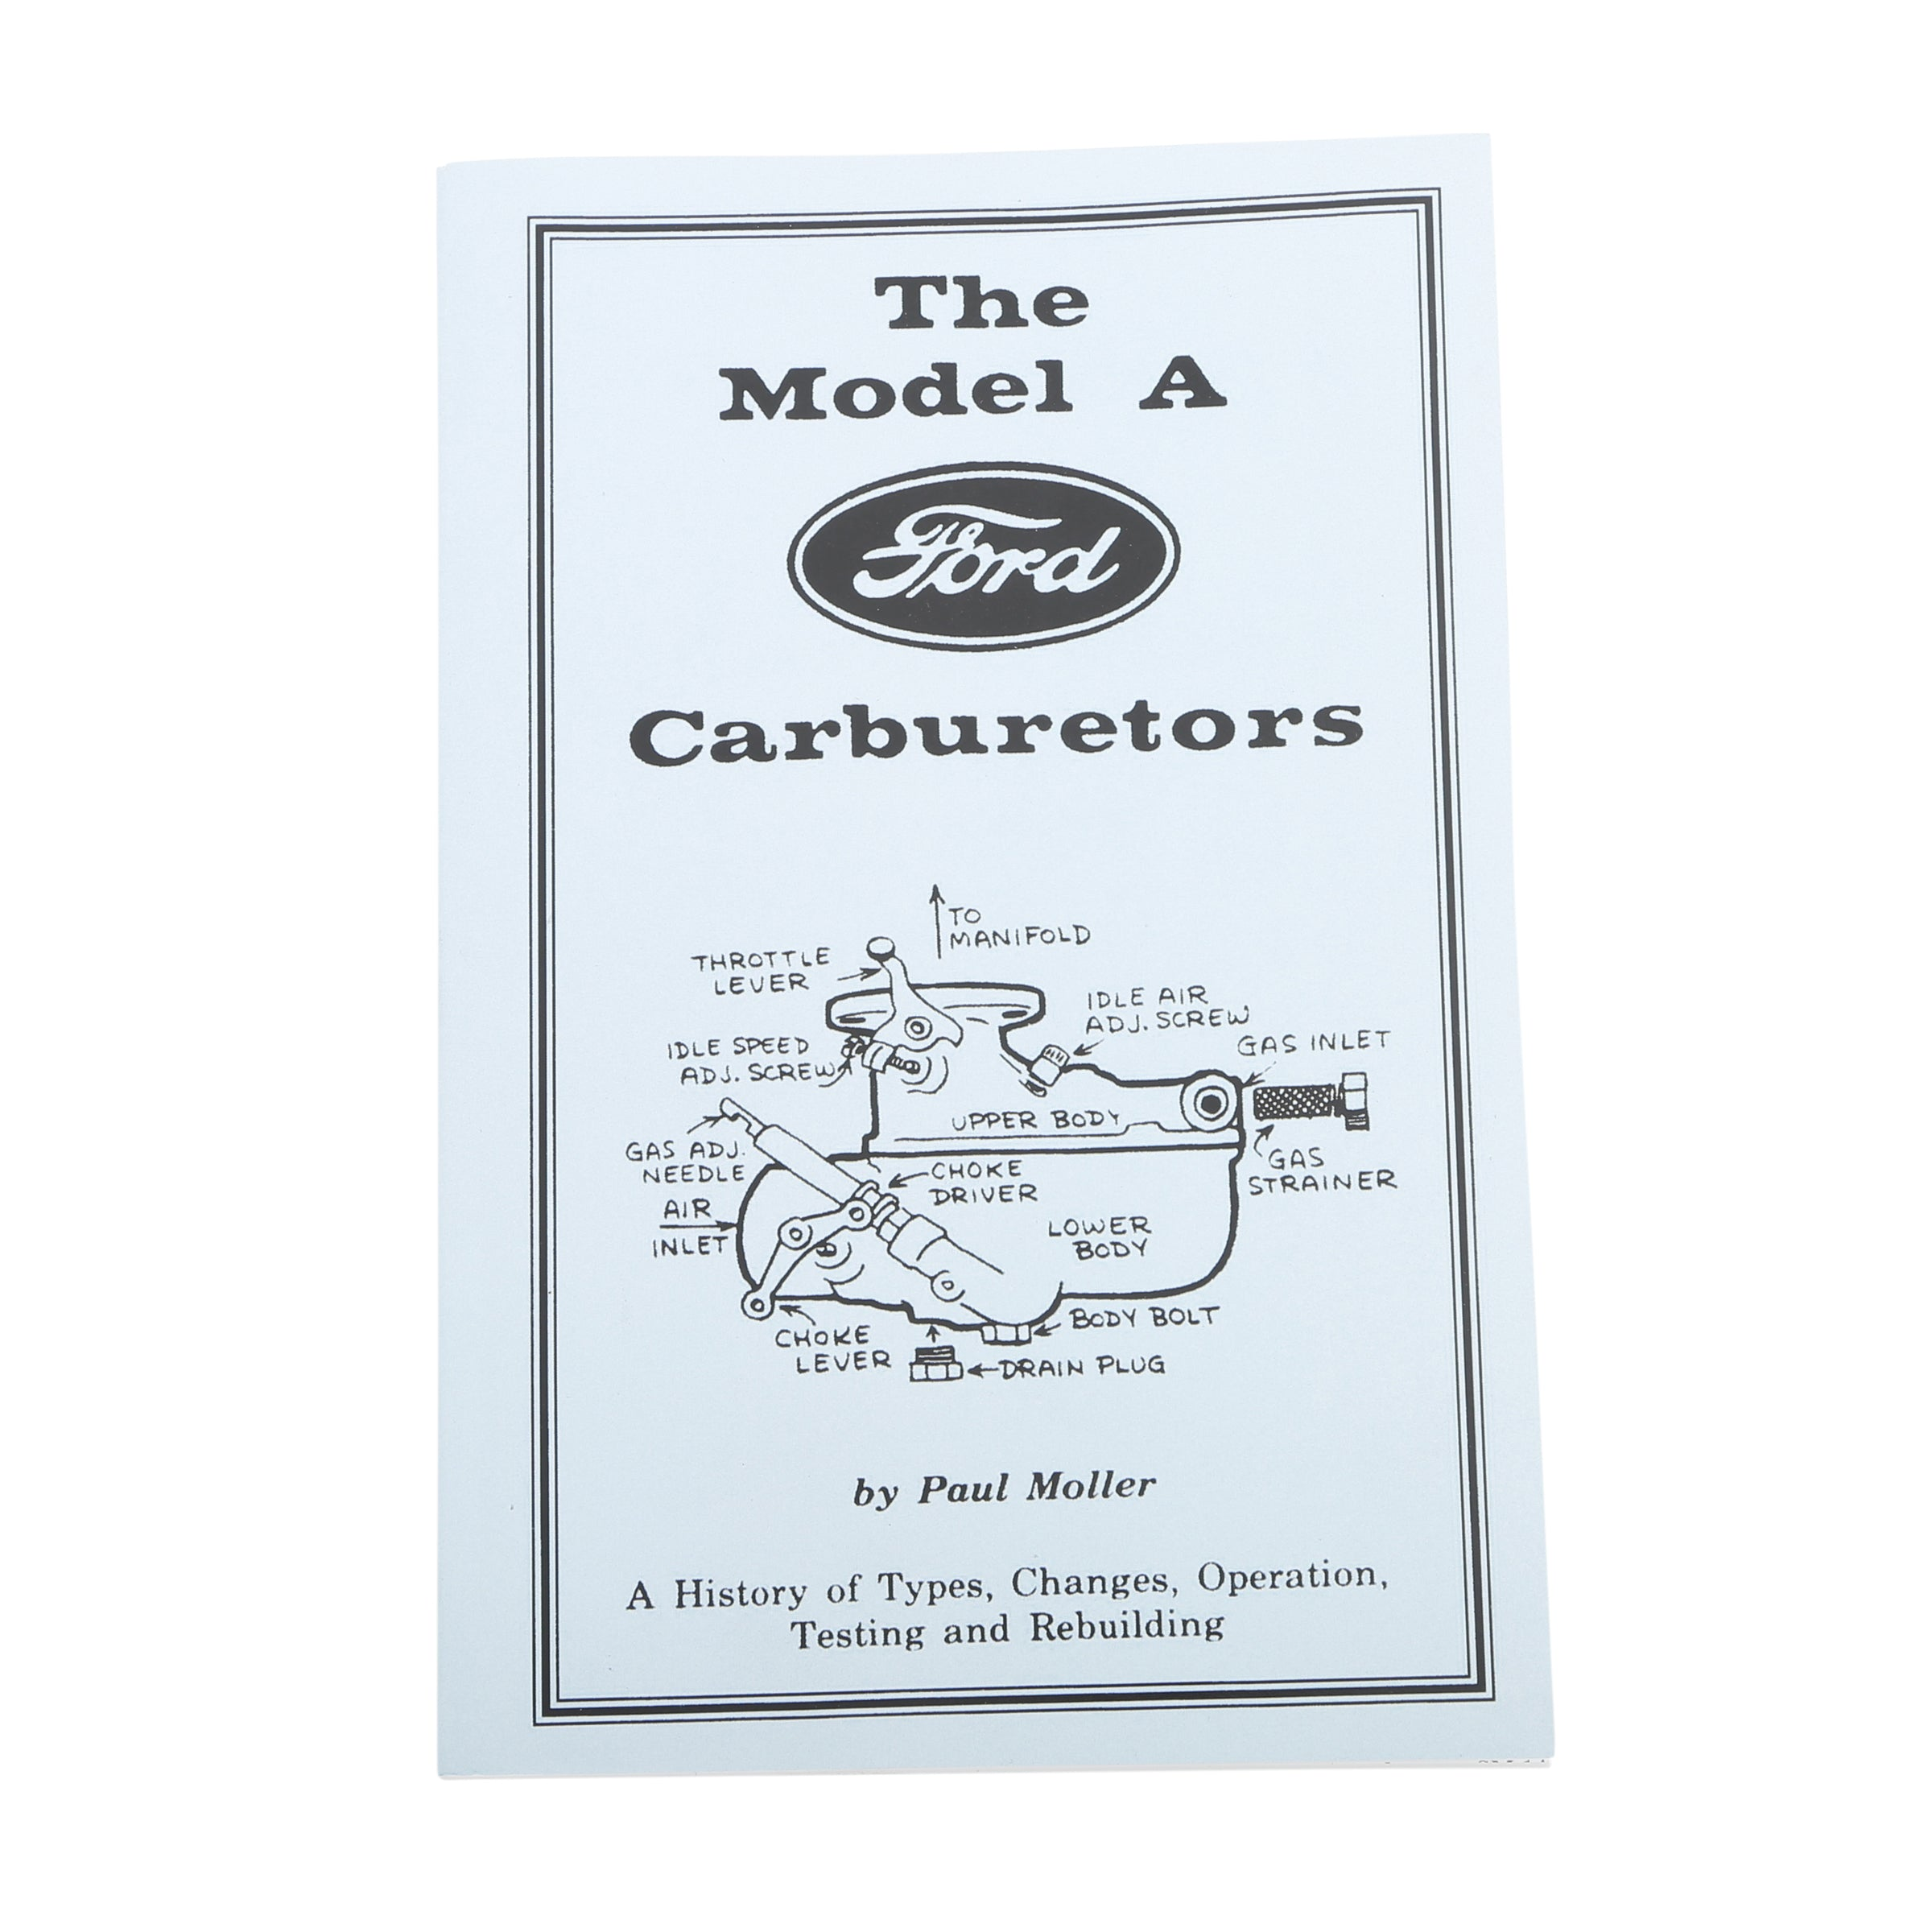 The Model A FORD Carburetors • 1928-31 Zenith